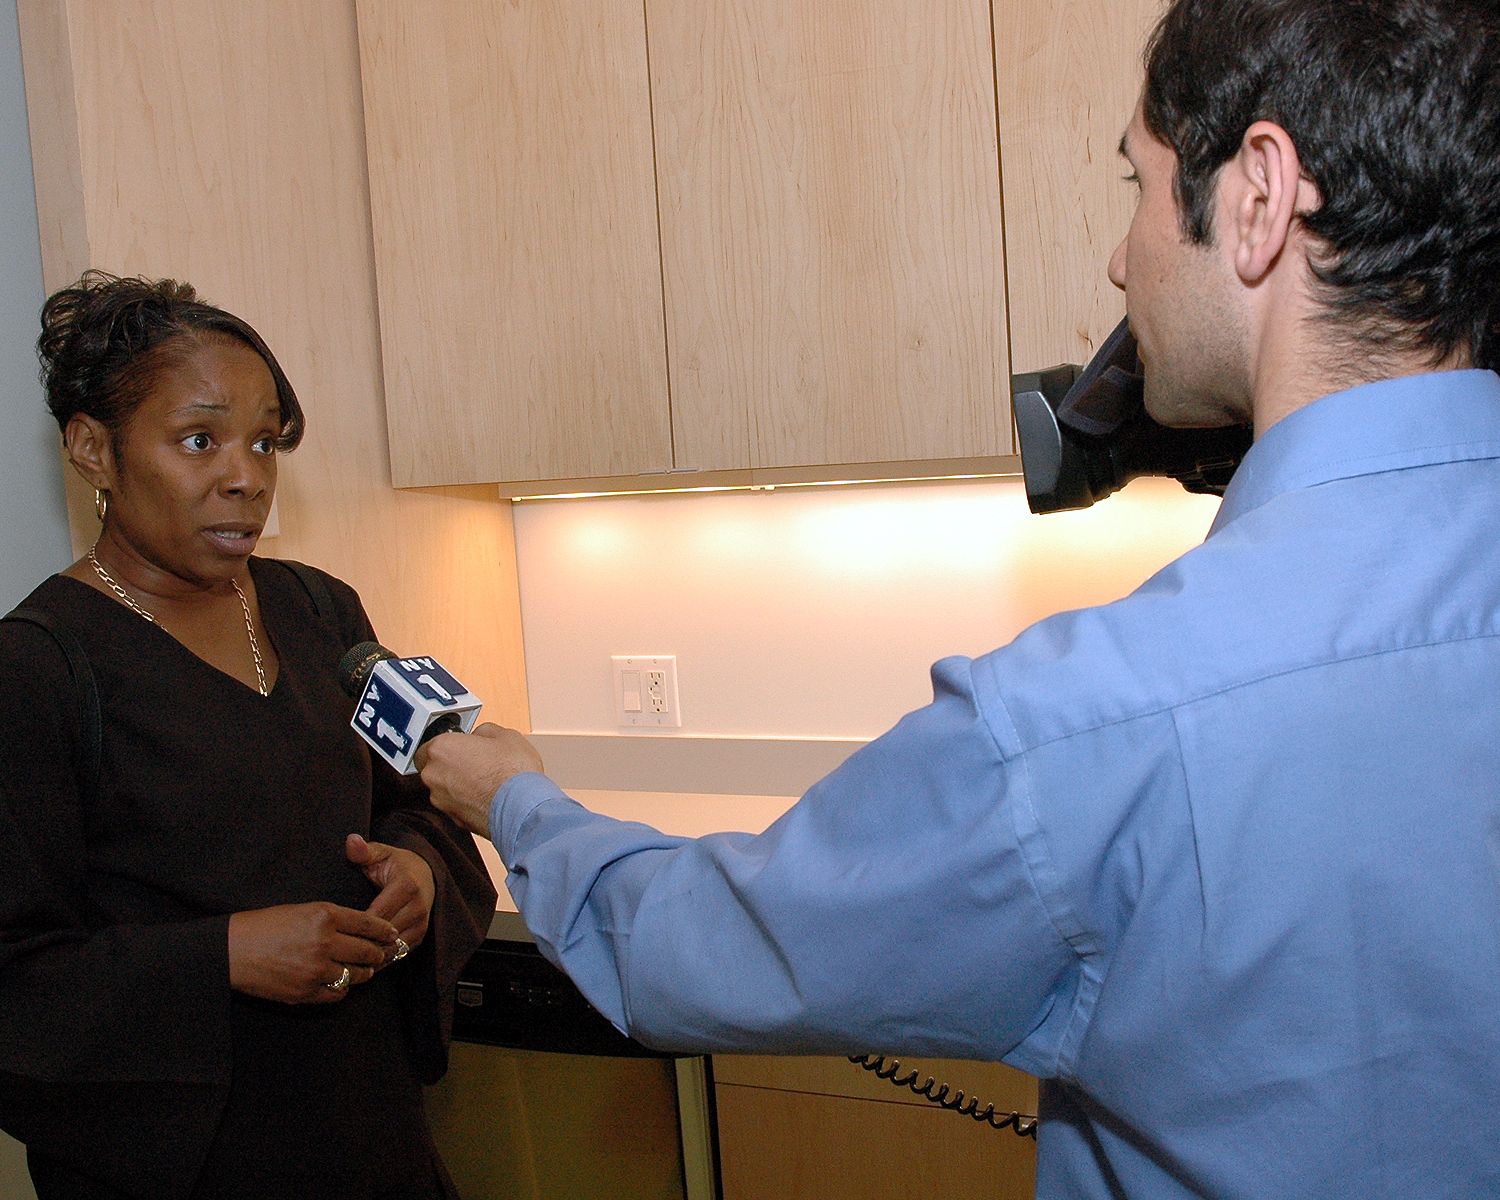 NY1 interviews Diane Williams